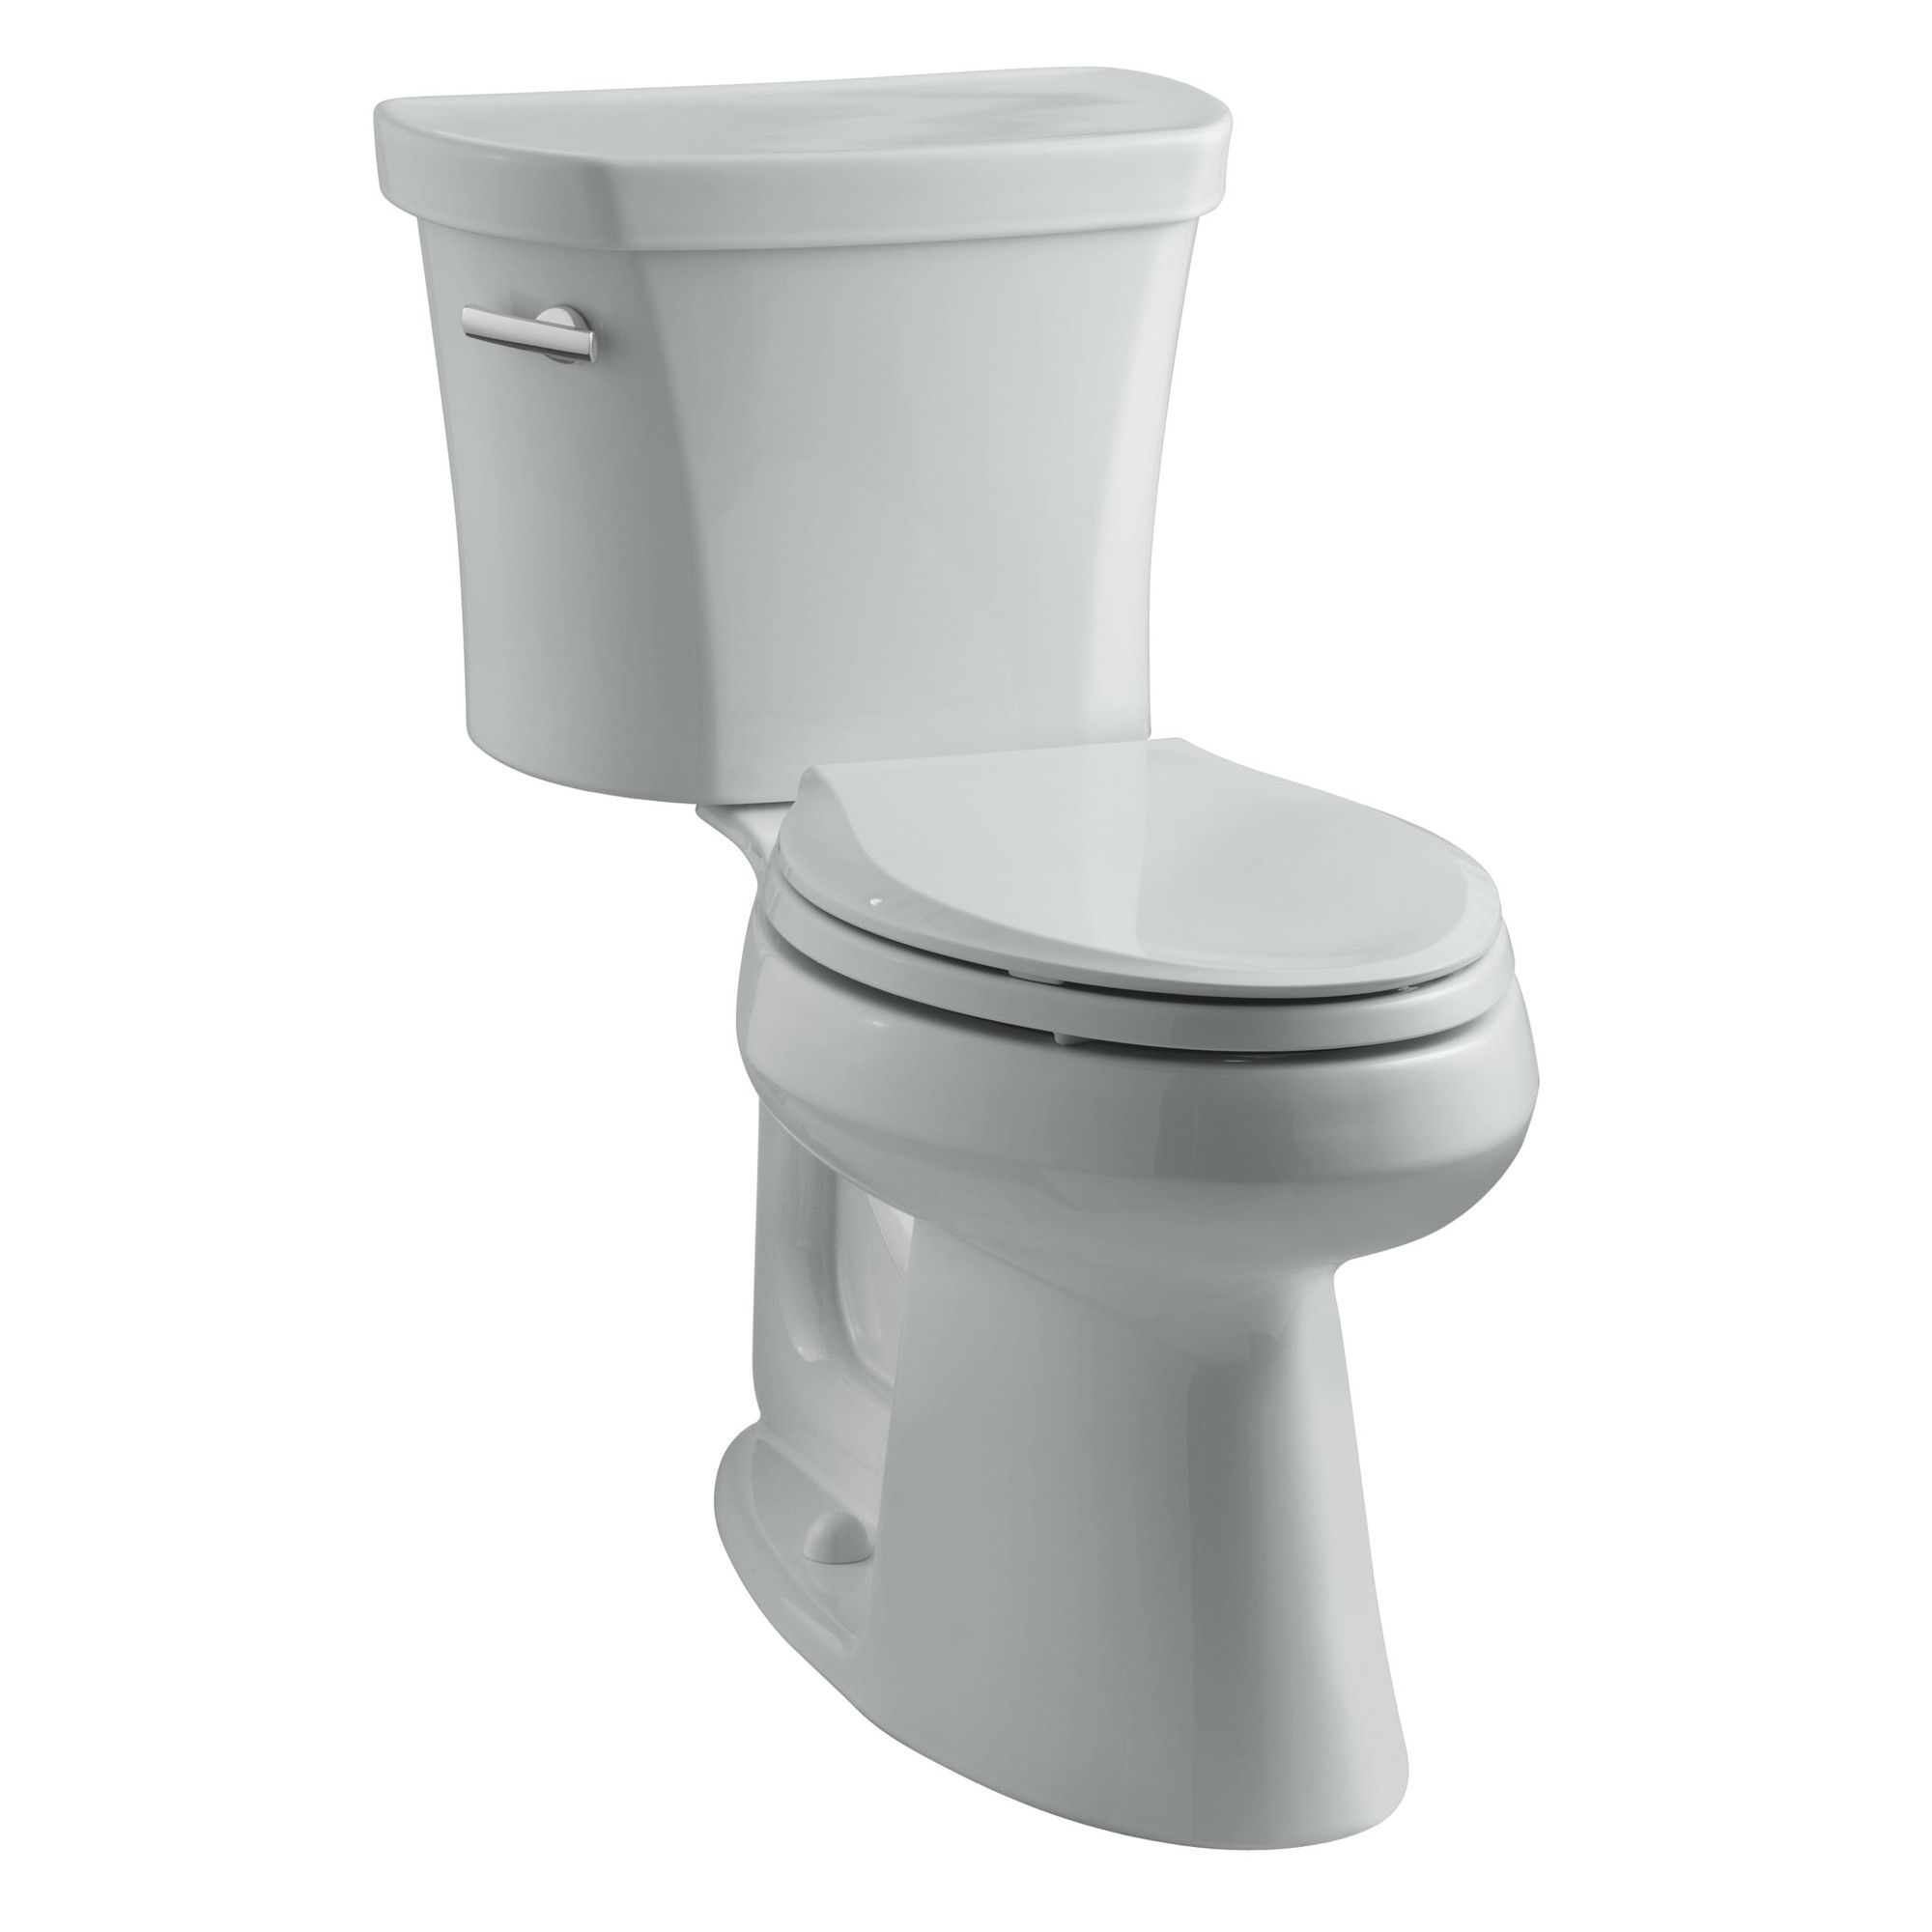 Highline Comfort Height Two-Piece Elongated 1.28 GPF Toilet with Class Five Flush Technology, Left-Hand Trip Lever and Insuliner Tank Liner